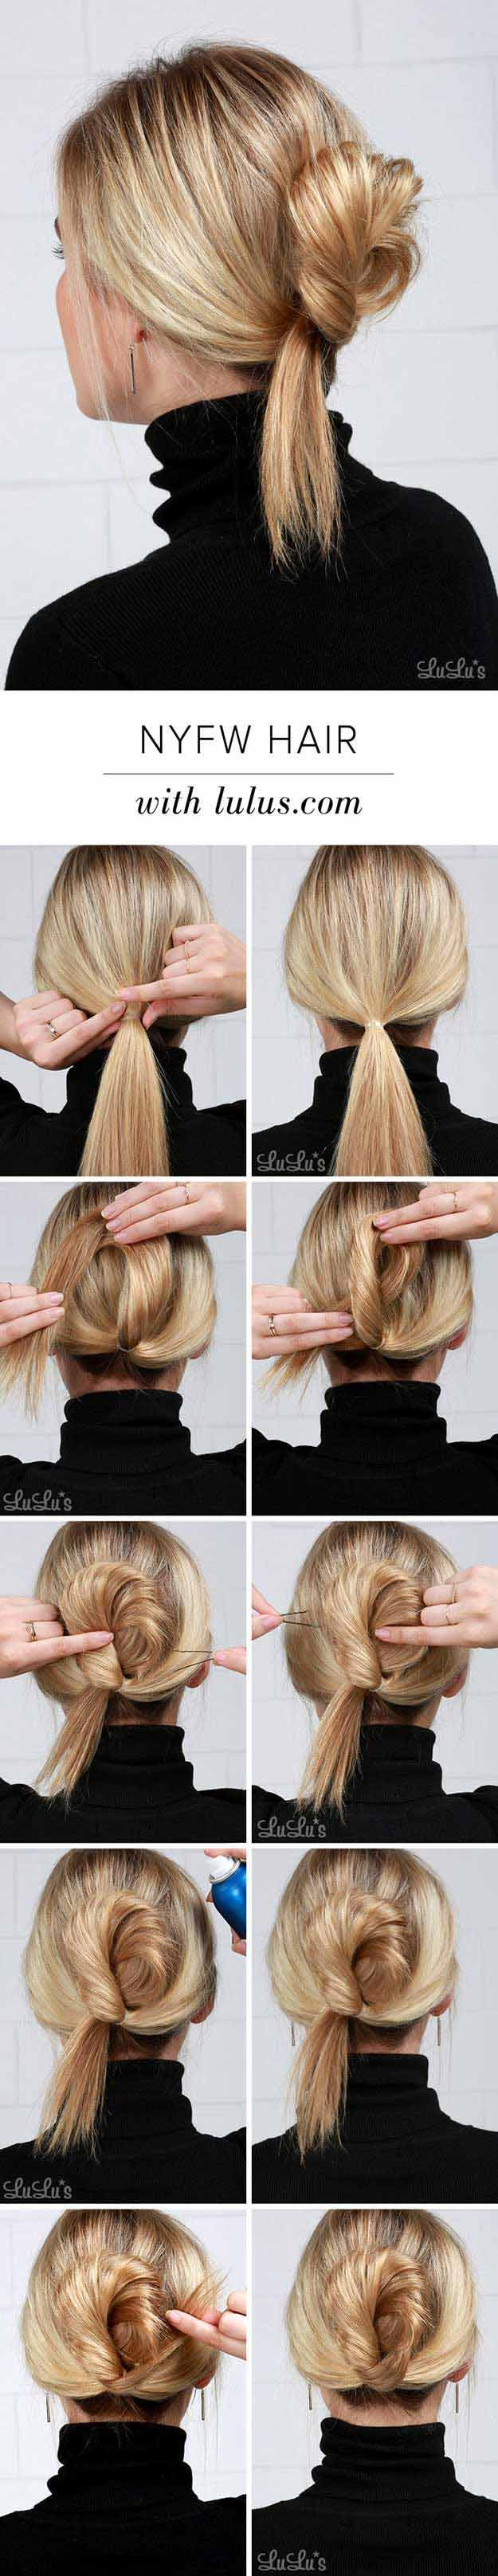 18 best DIY Hairstyles images on Pinterest